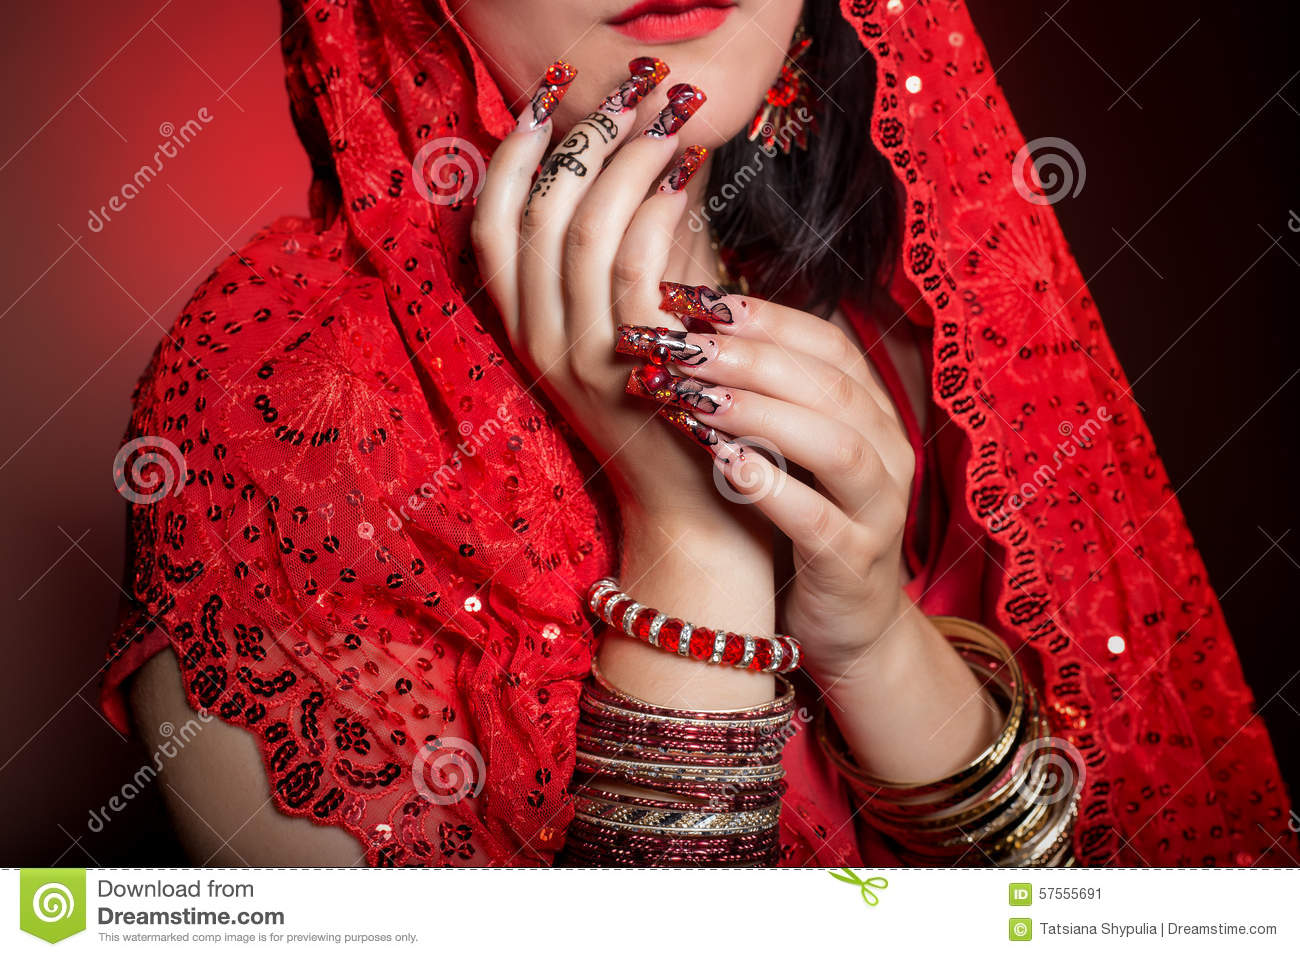 Beautiful Girl In The Image Of Indian Woman In A Red Sari With